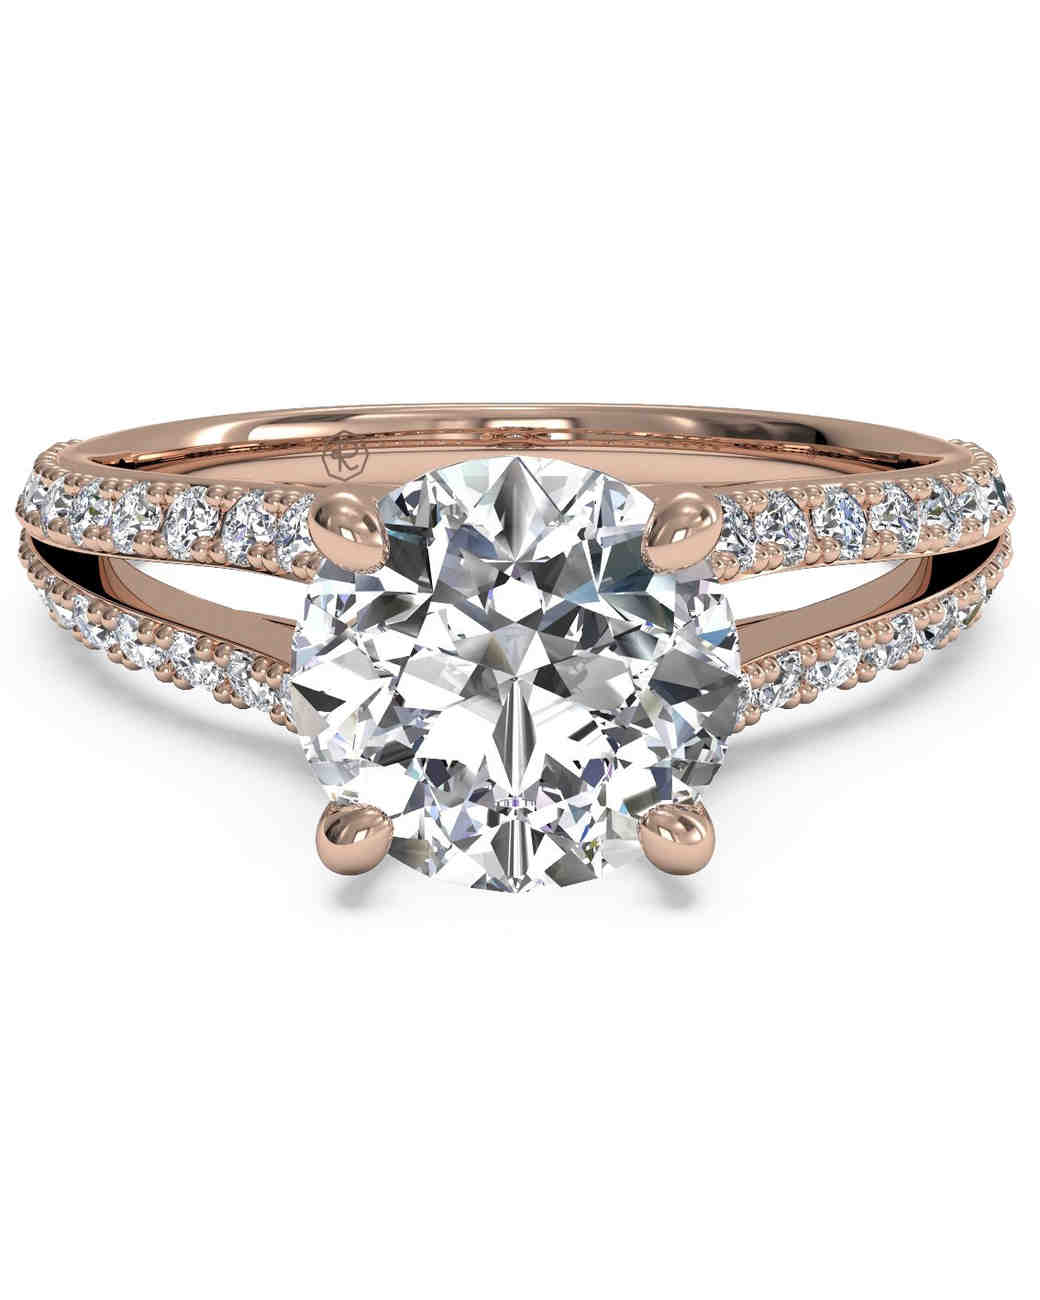 t op ring band anniversary jewelry rings wid s wedding catalog hei carat white bands kohl gold w jsp diamond sharpen